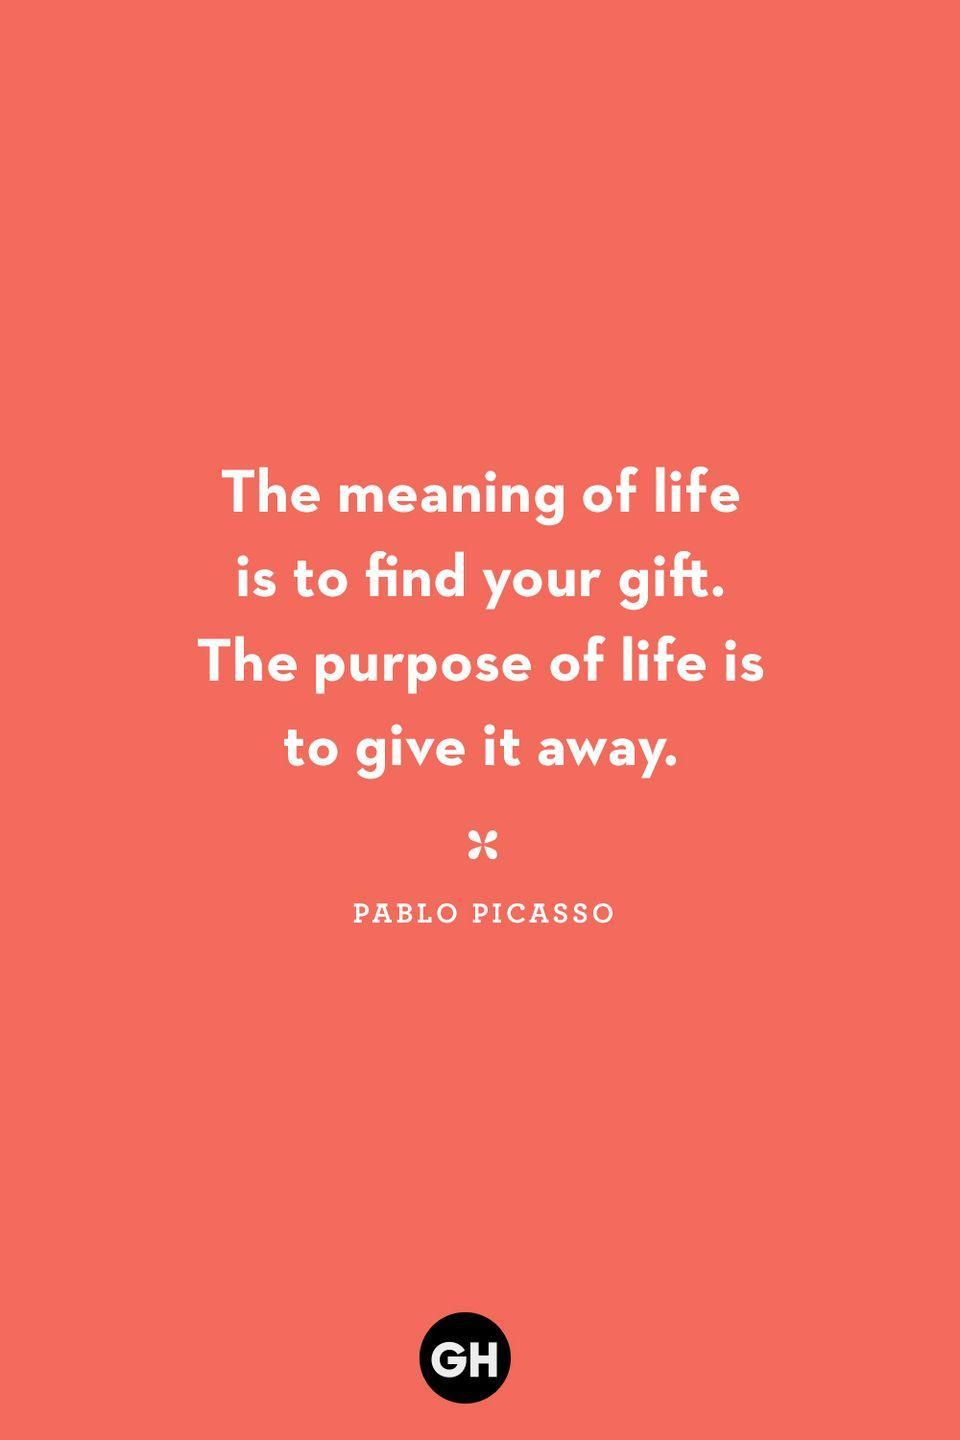 <p>The meaning of life is to find your gift. The purpose of life is to give it away.</p>